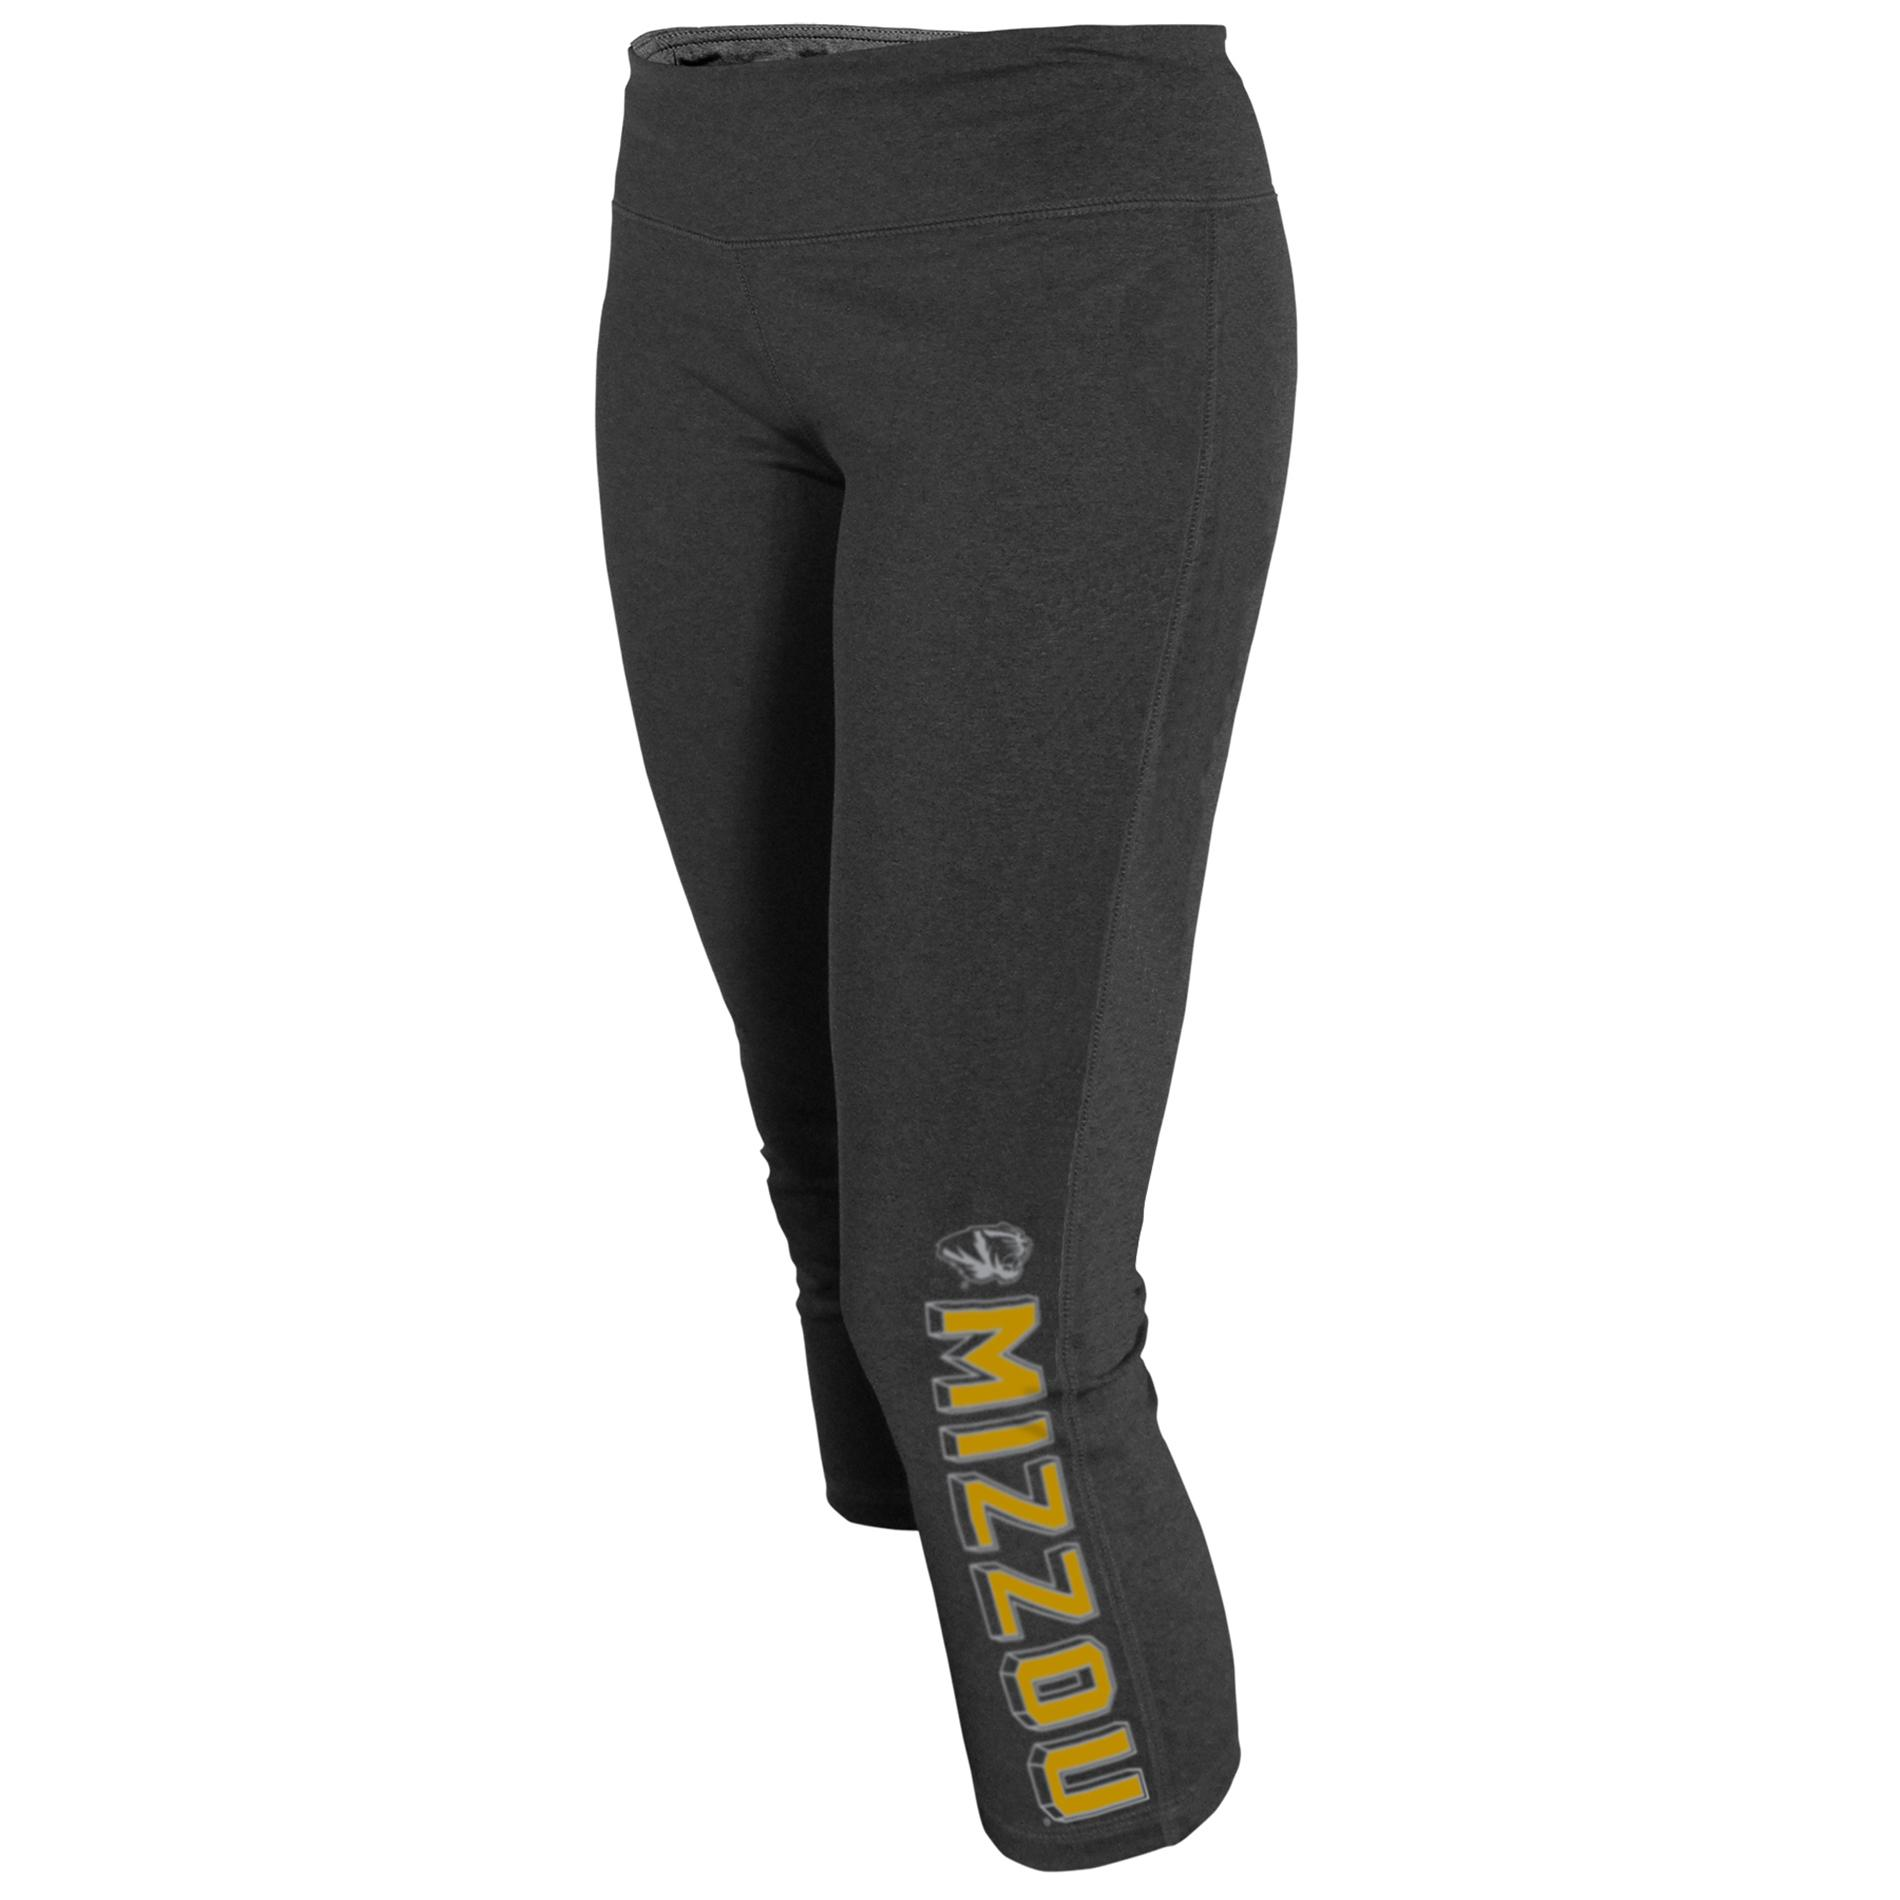 NCAA Women's Capri Yoga Pants - Mizzou Tigers